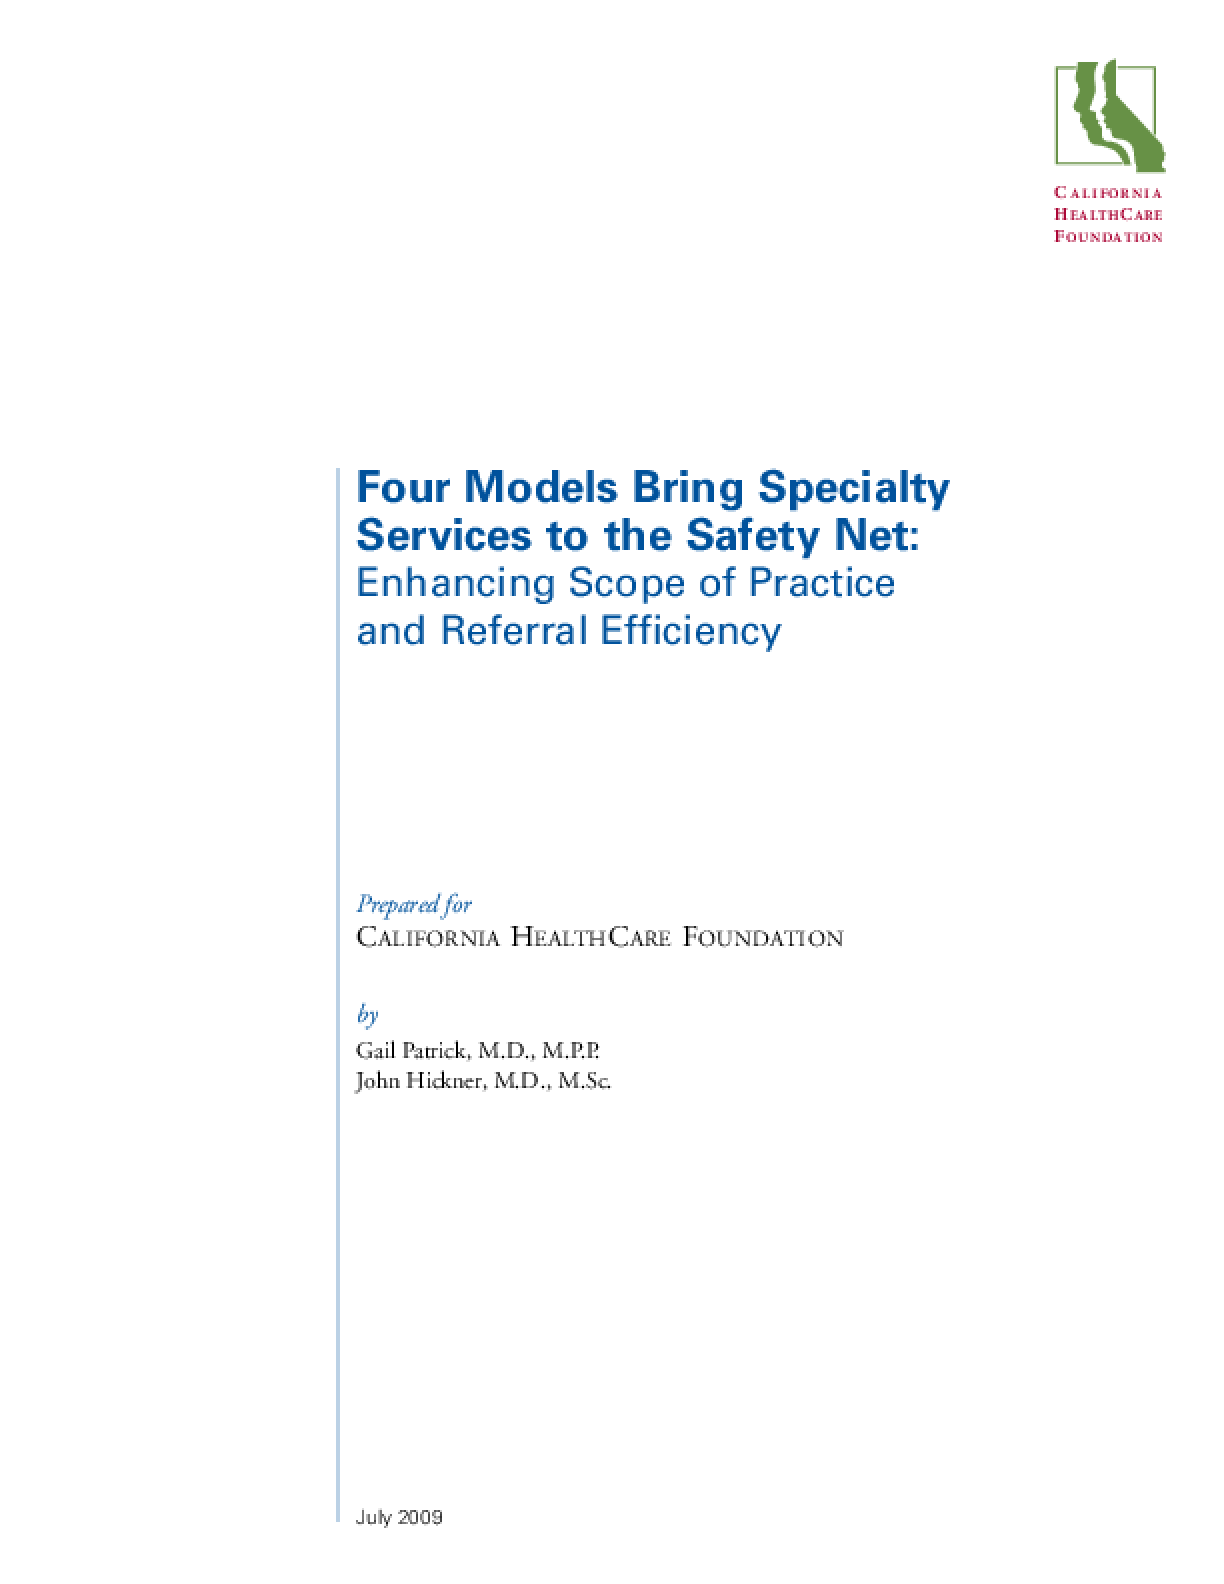 Four Models Bring Specialty Services to the Safety Net: Enhancing Scope of Practice and Referral Efficiency